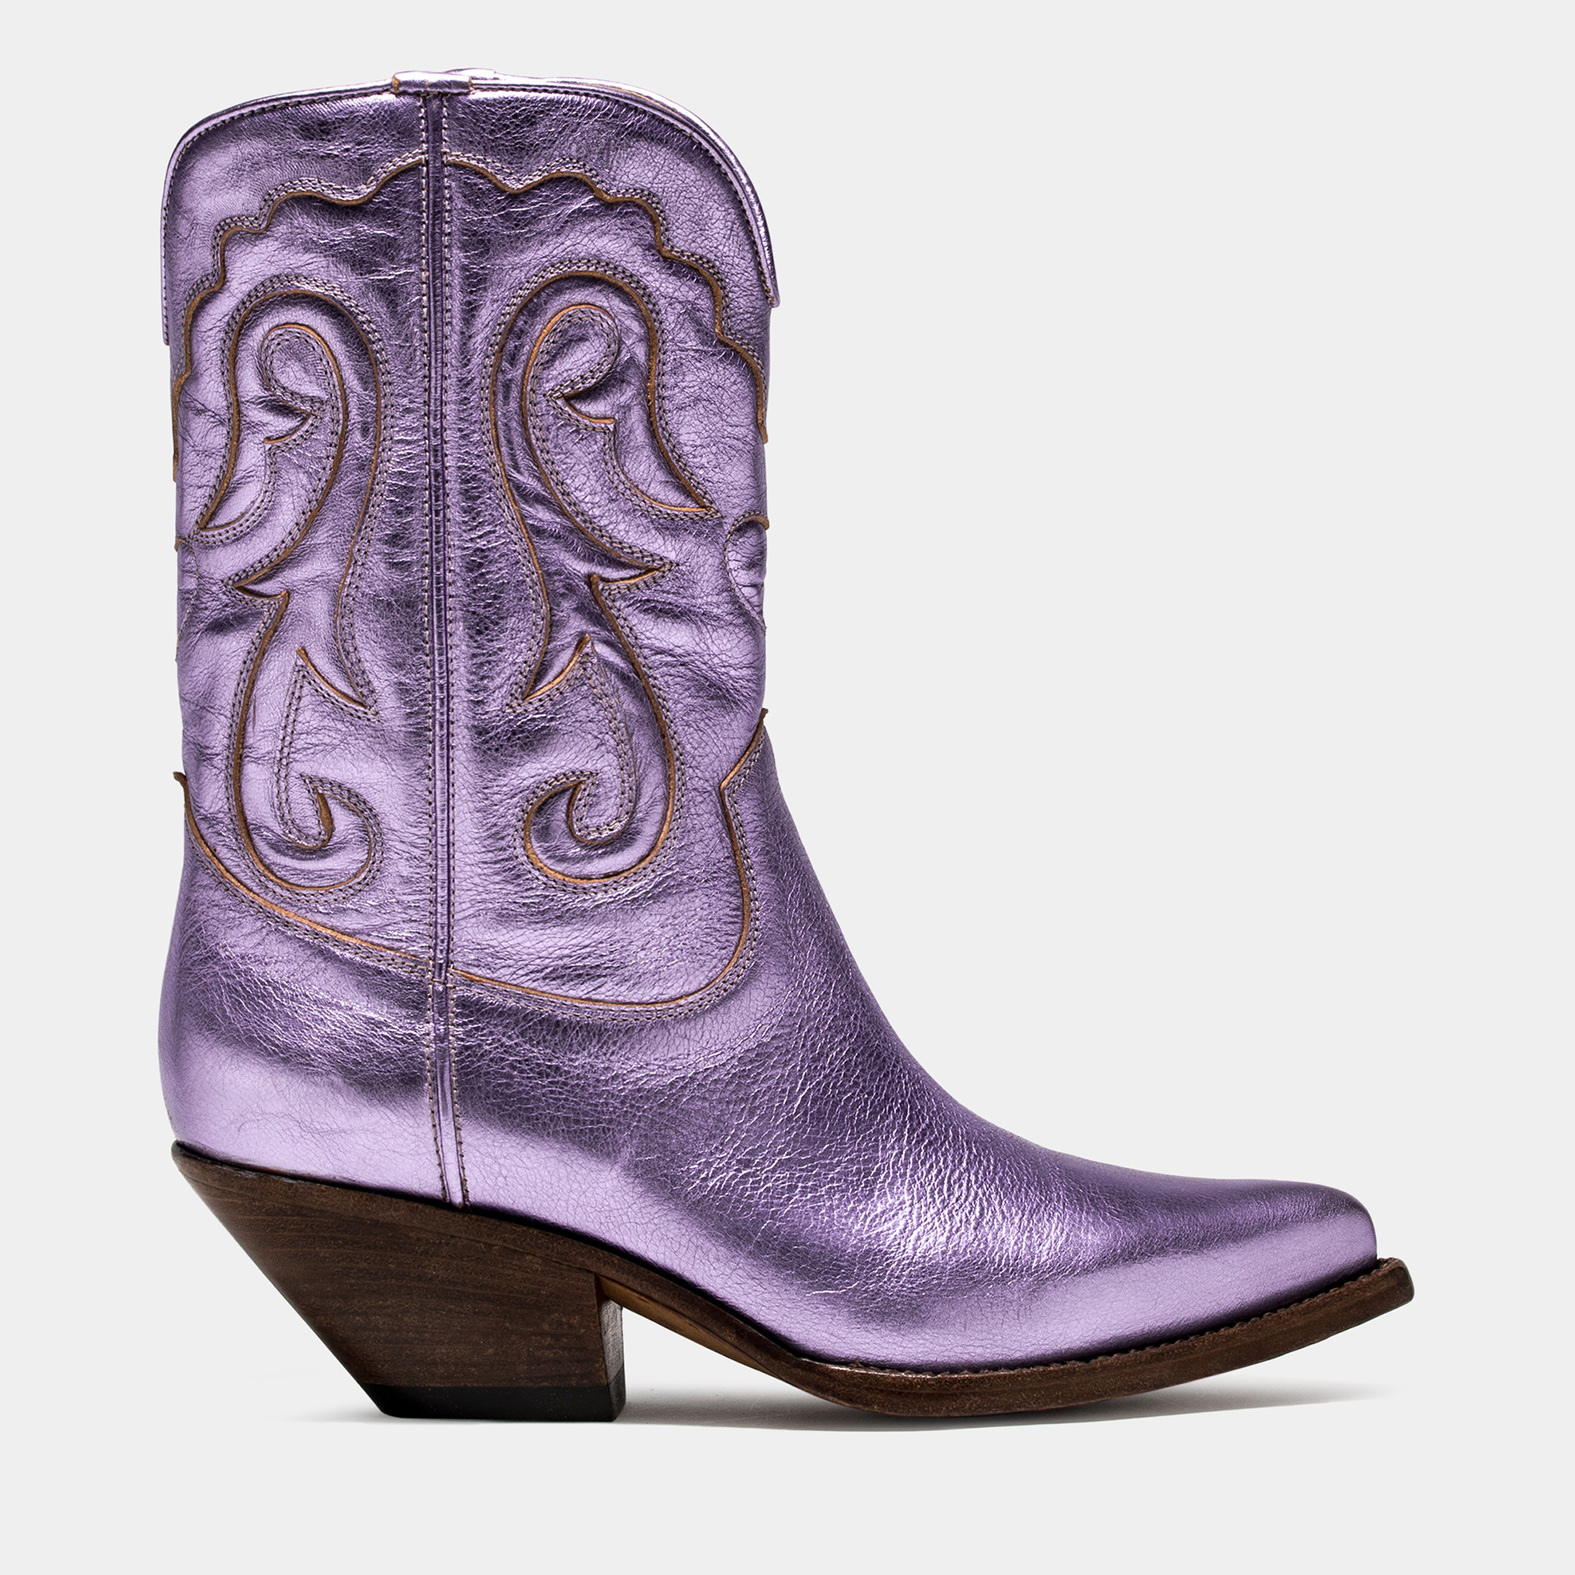 BUTTERO: ELISE MID TOP DURANGO BOOTS IN PINK LAMINATED LEATHER